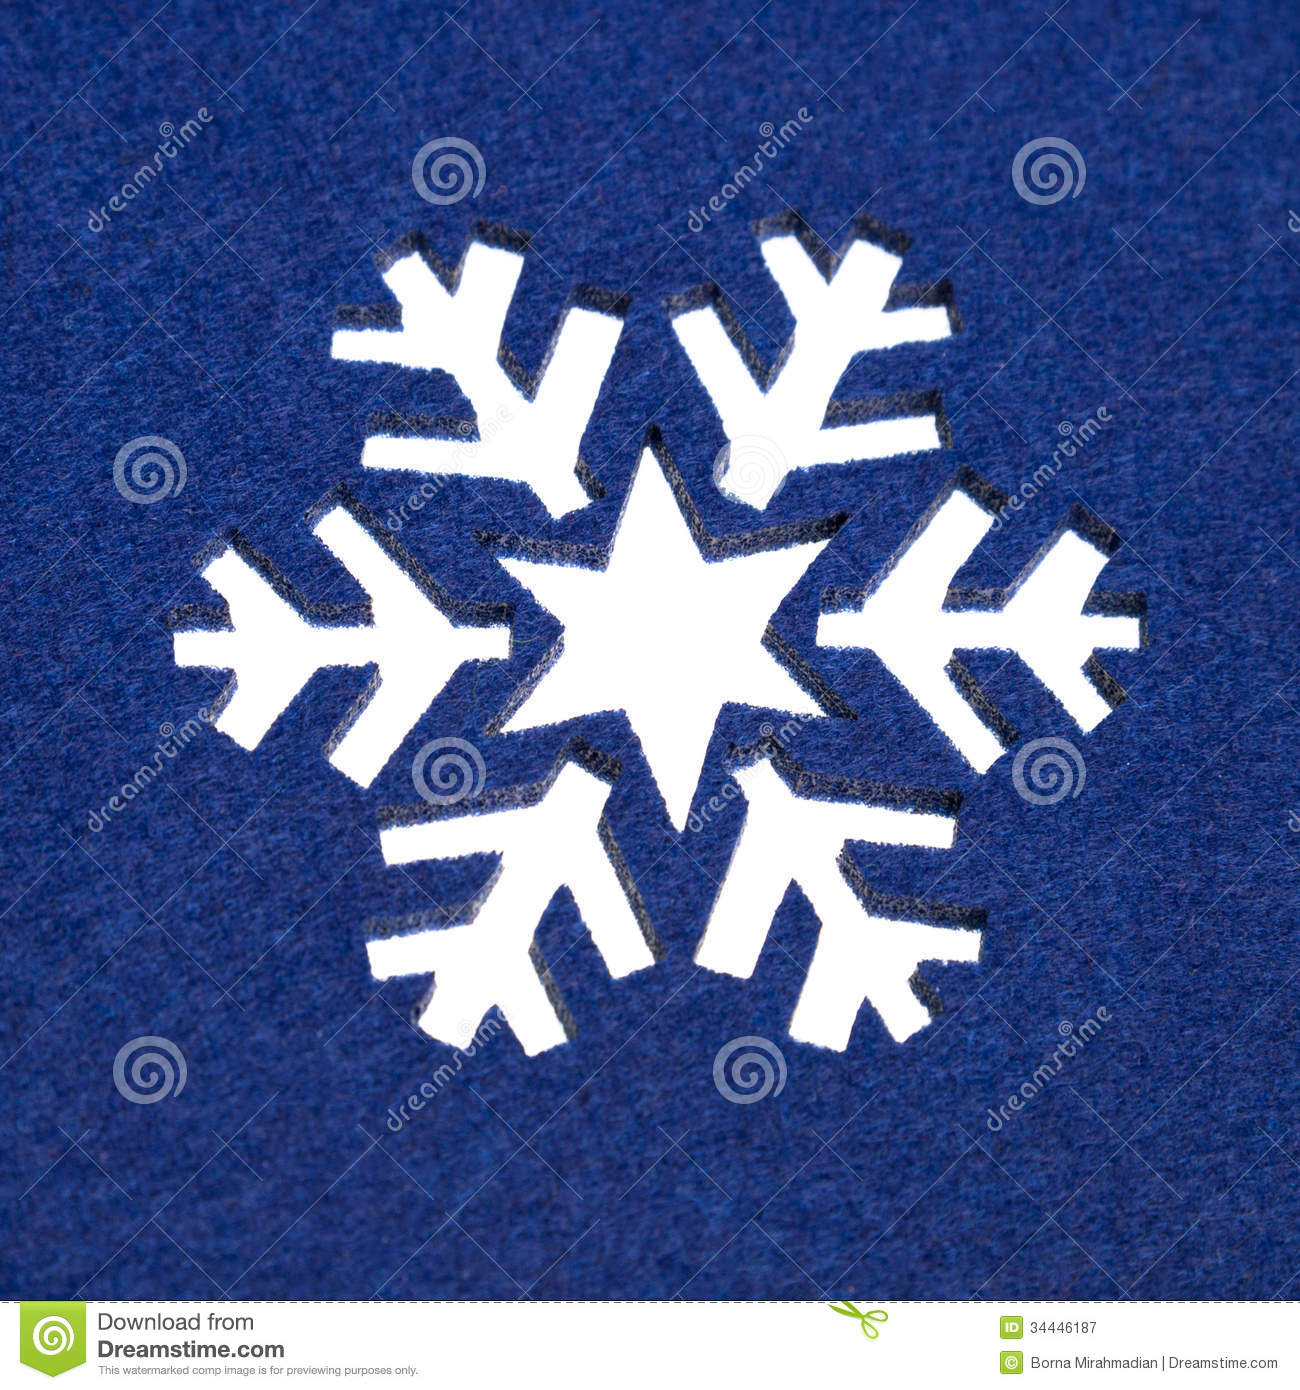 Snowflake Cutout Patterns Snowflake pattern cut out from